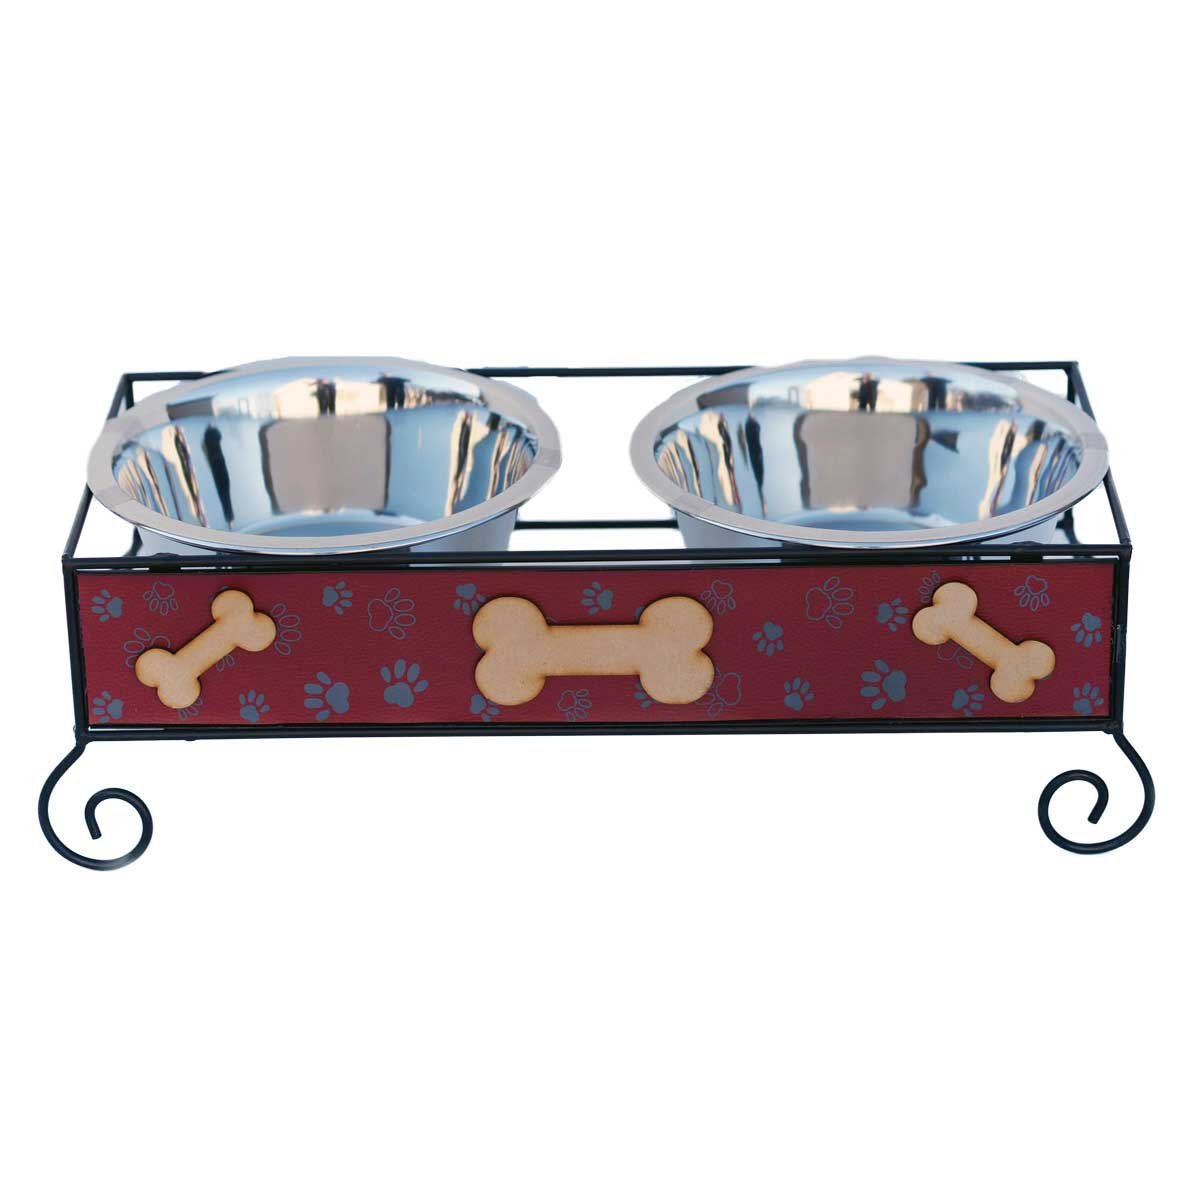 Wood And Iron Bone Design Indipets Luxe Craft Diner for Dogs 1 Pint